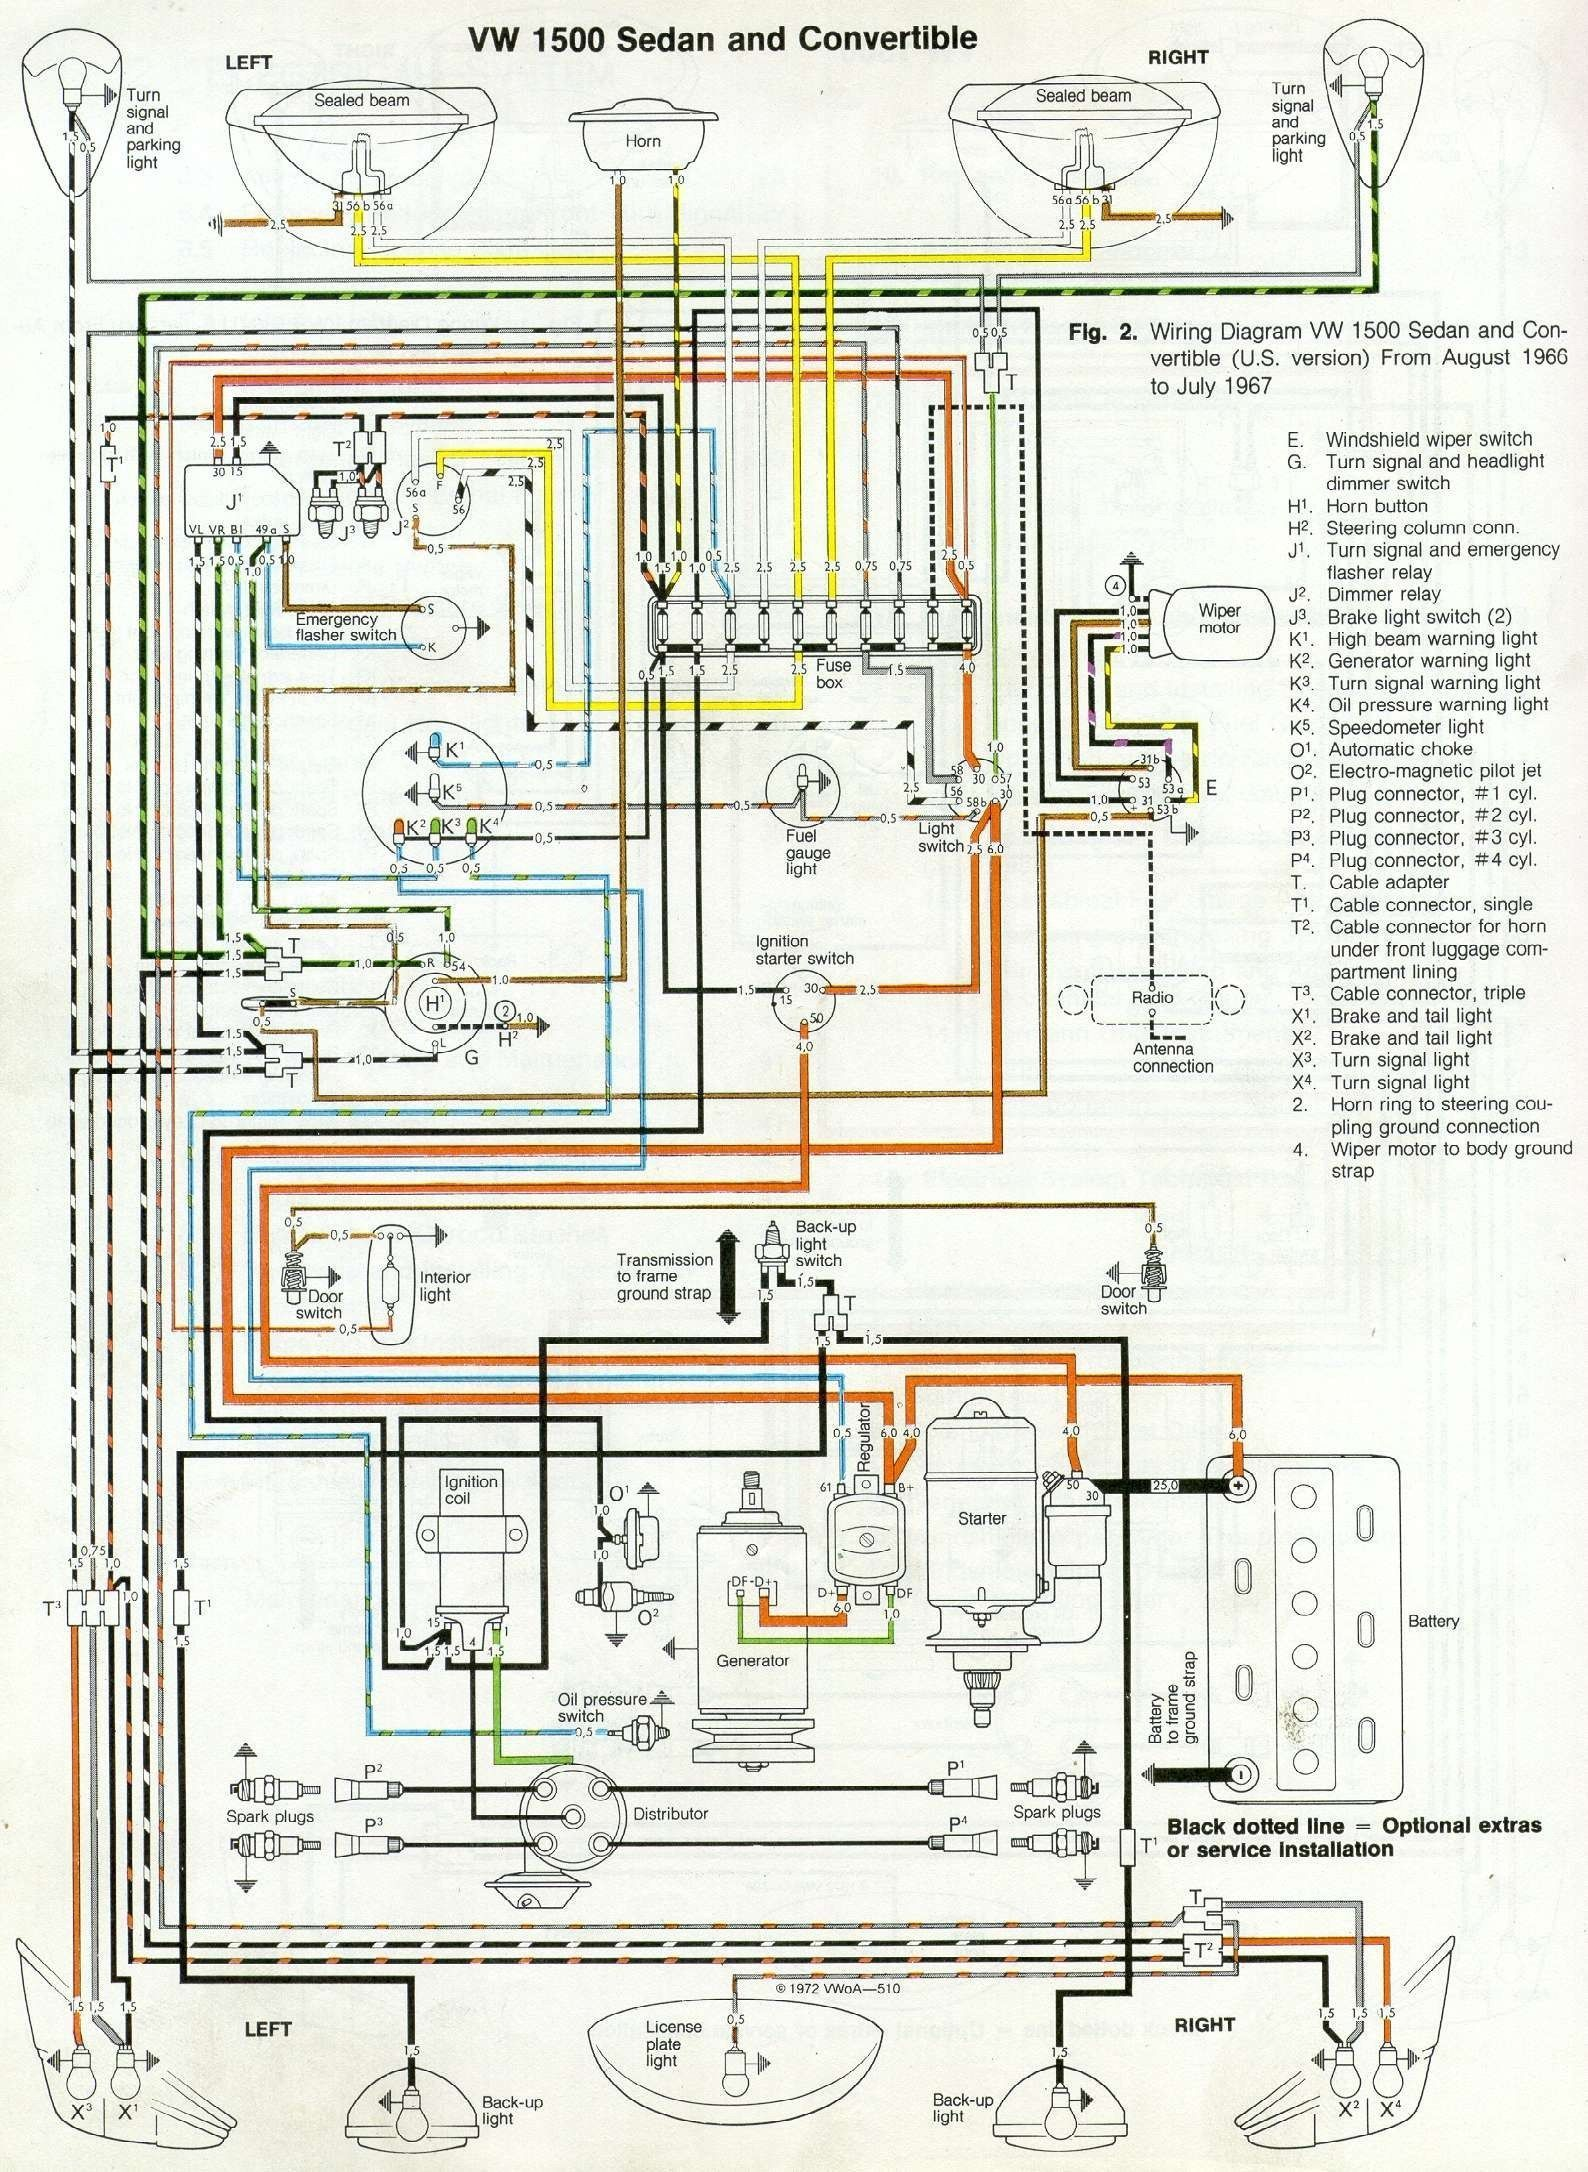 Image result for 67 vw bug wiring diagram #VolkswagenPointer ... on classic bug, 67 volkswagen vanagon, 67 volkswagen busfor sale, 67 volkswagen bus, baja bug, 67 volkswagen beetle older, 67 volkswagen fastback, vw bug, bob beetle bug,